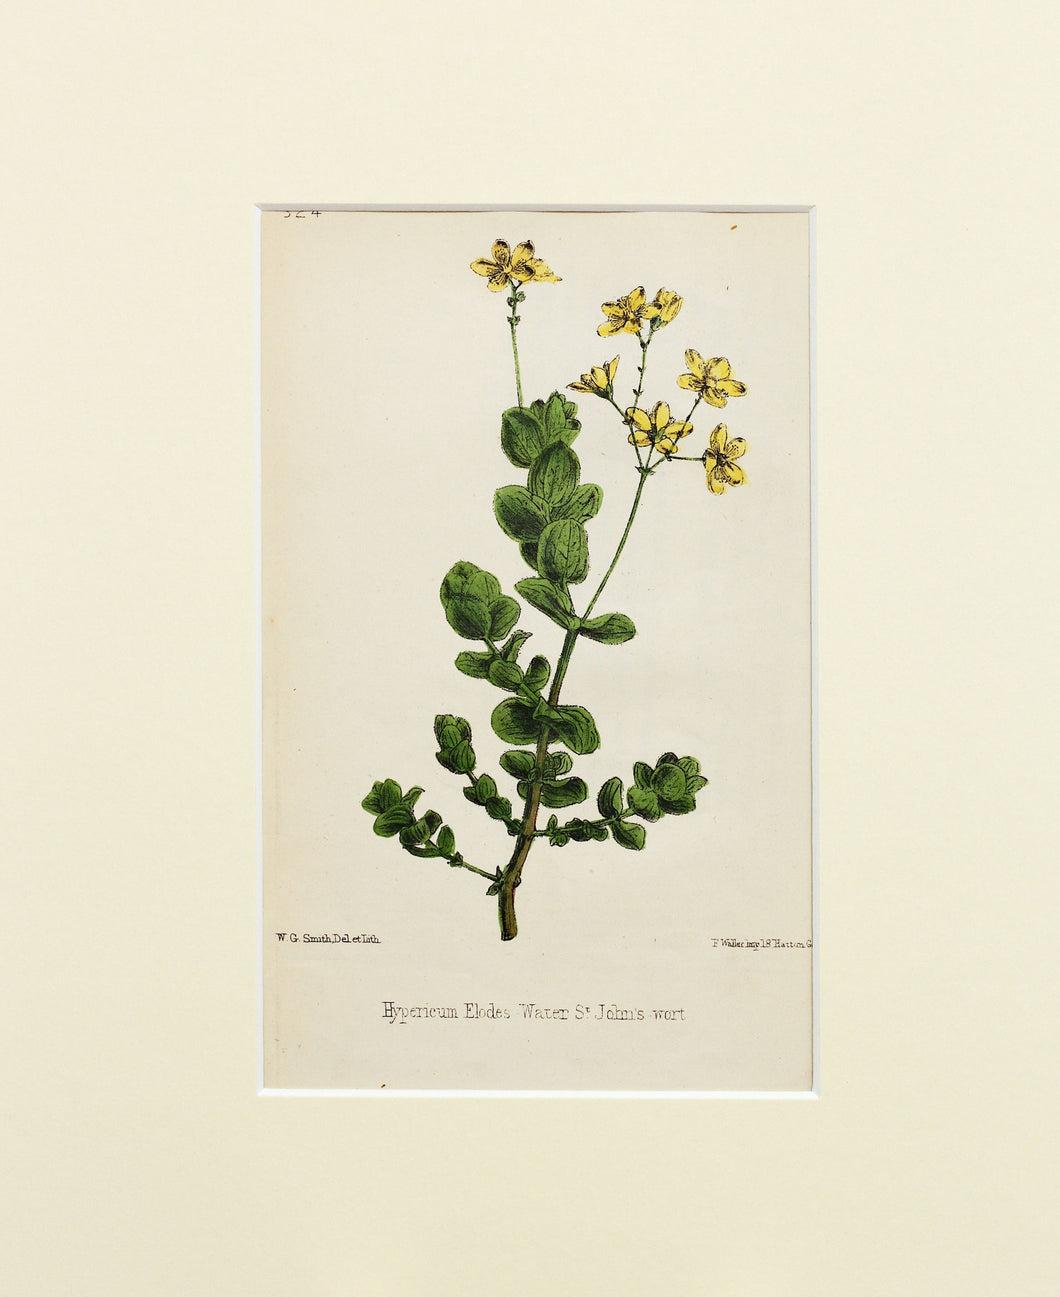 Water St Johns Wort - Antique Lithograph of Wild Flowers circa 1860s